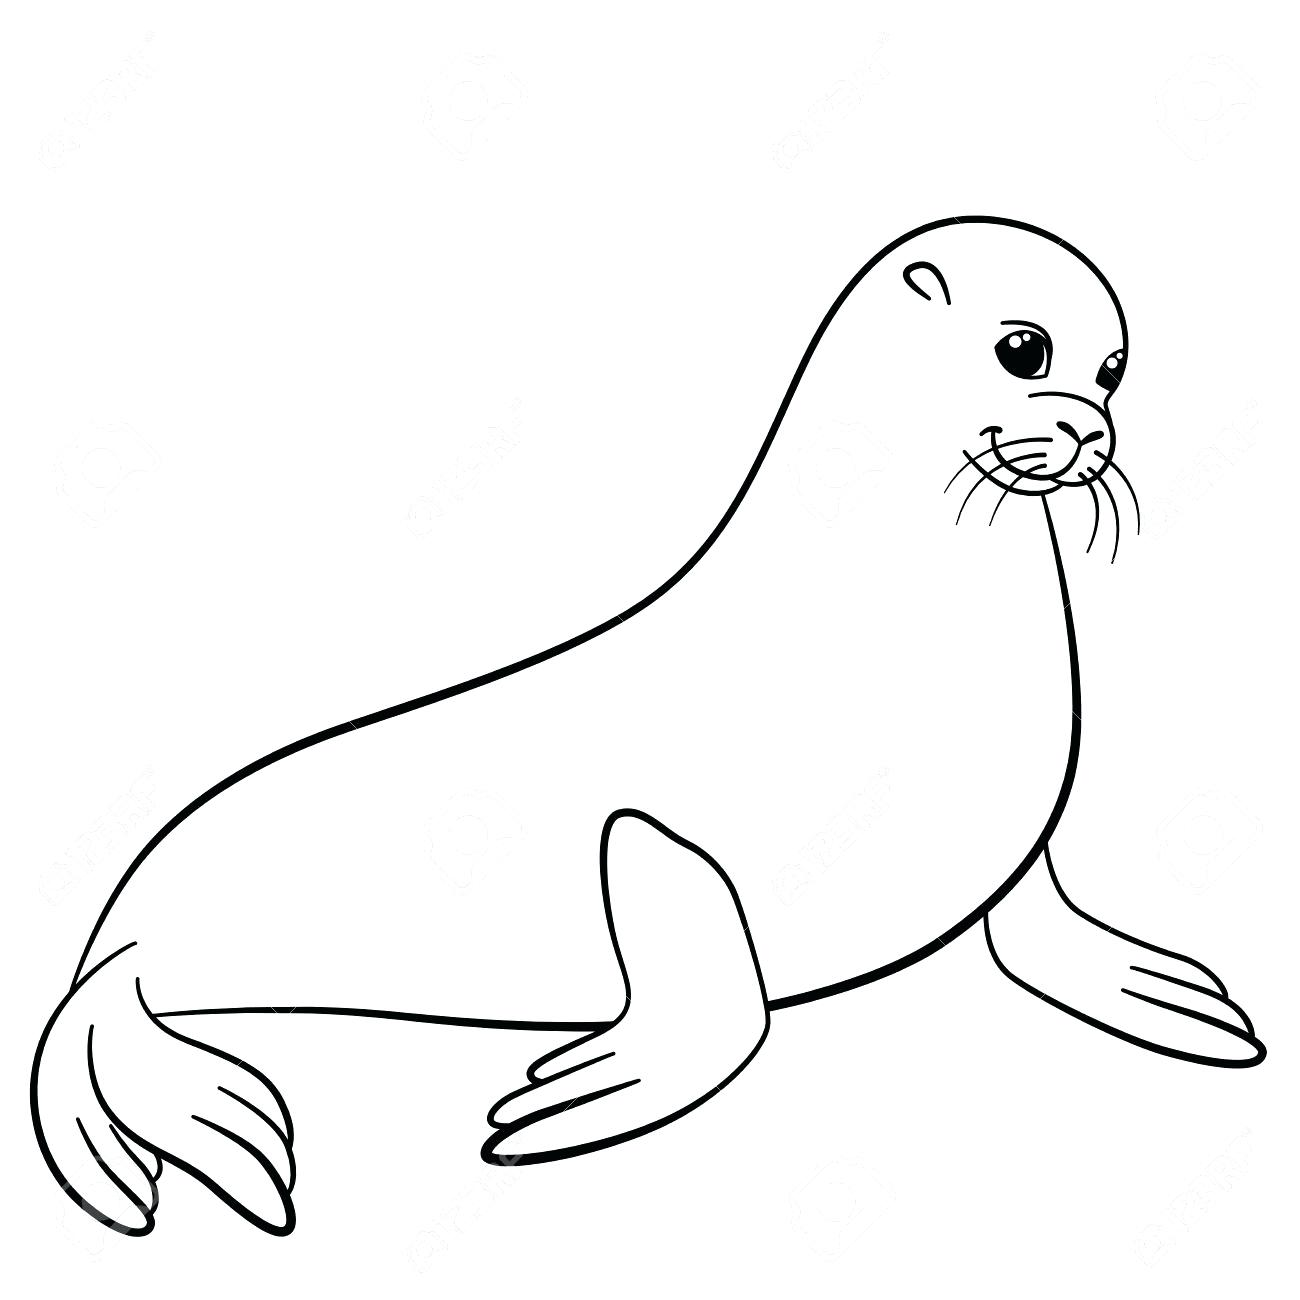 Harp Seal Drawing at GetDrawings.com | Free for personal use Harp ...